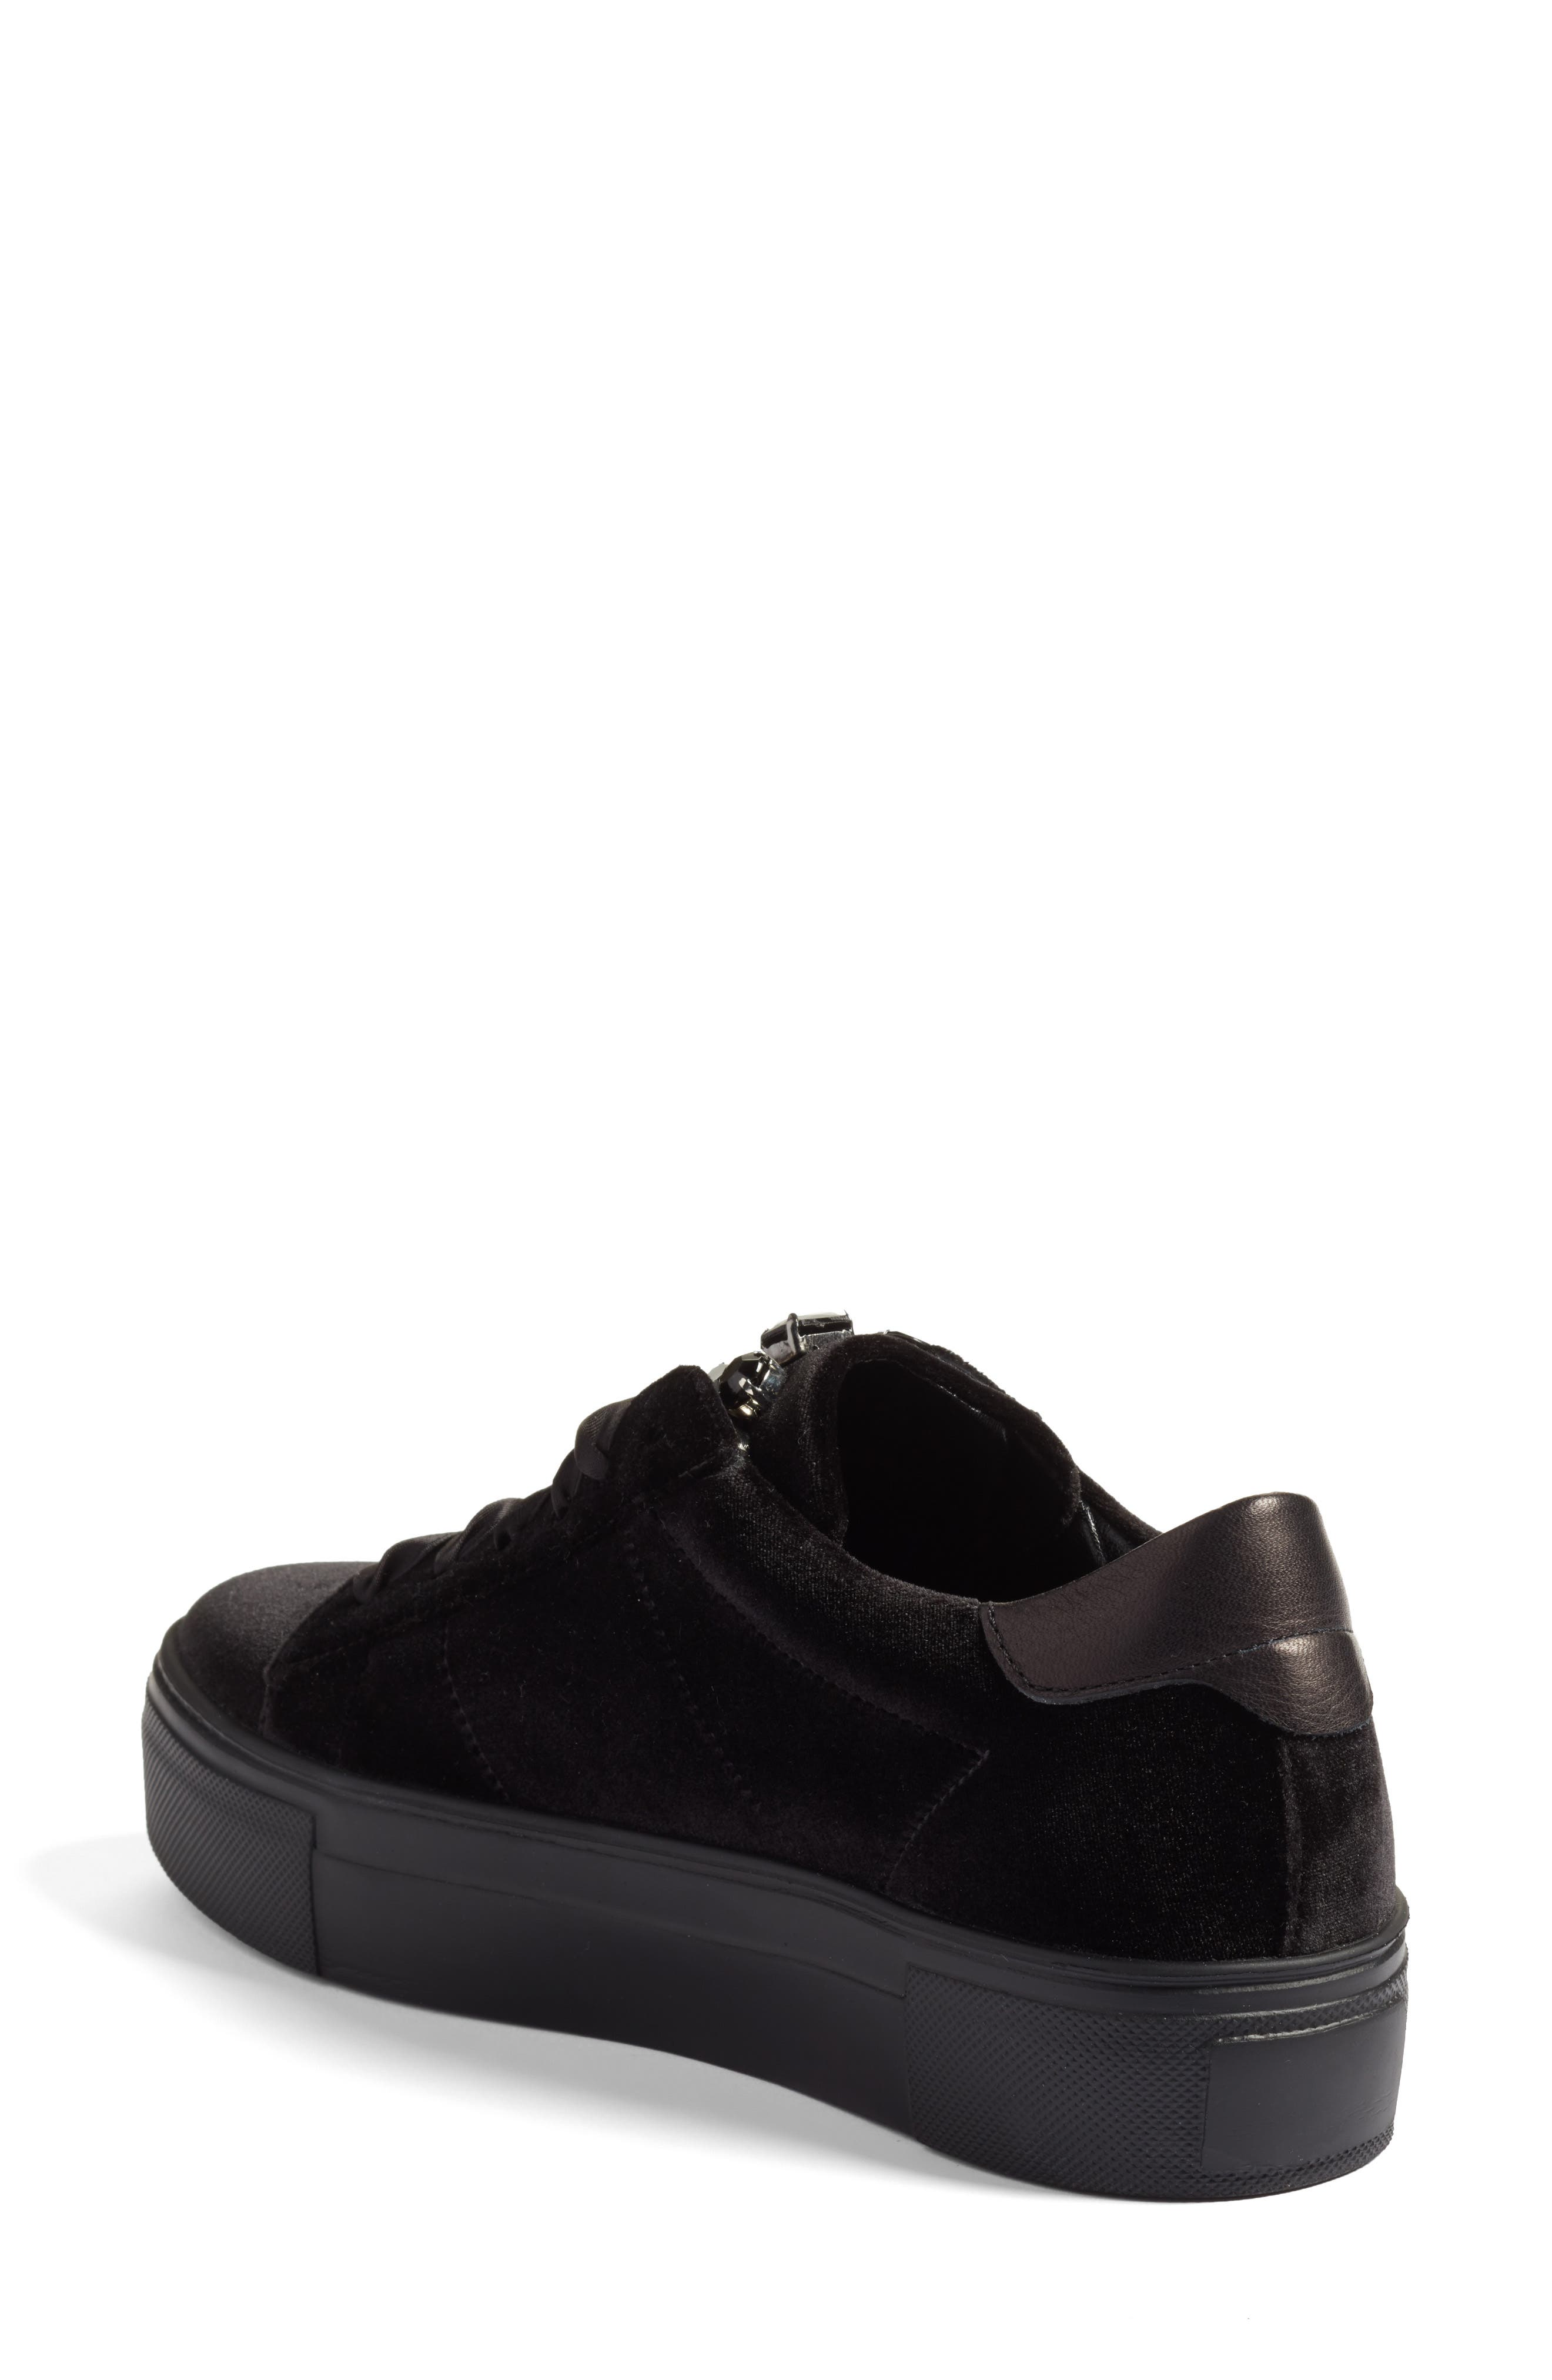 Alternate Image 2  - Kennel & Schmenger Big Velvet Lace-Up Sneaker (Women)